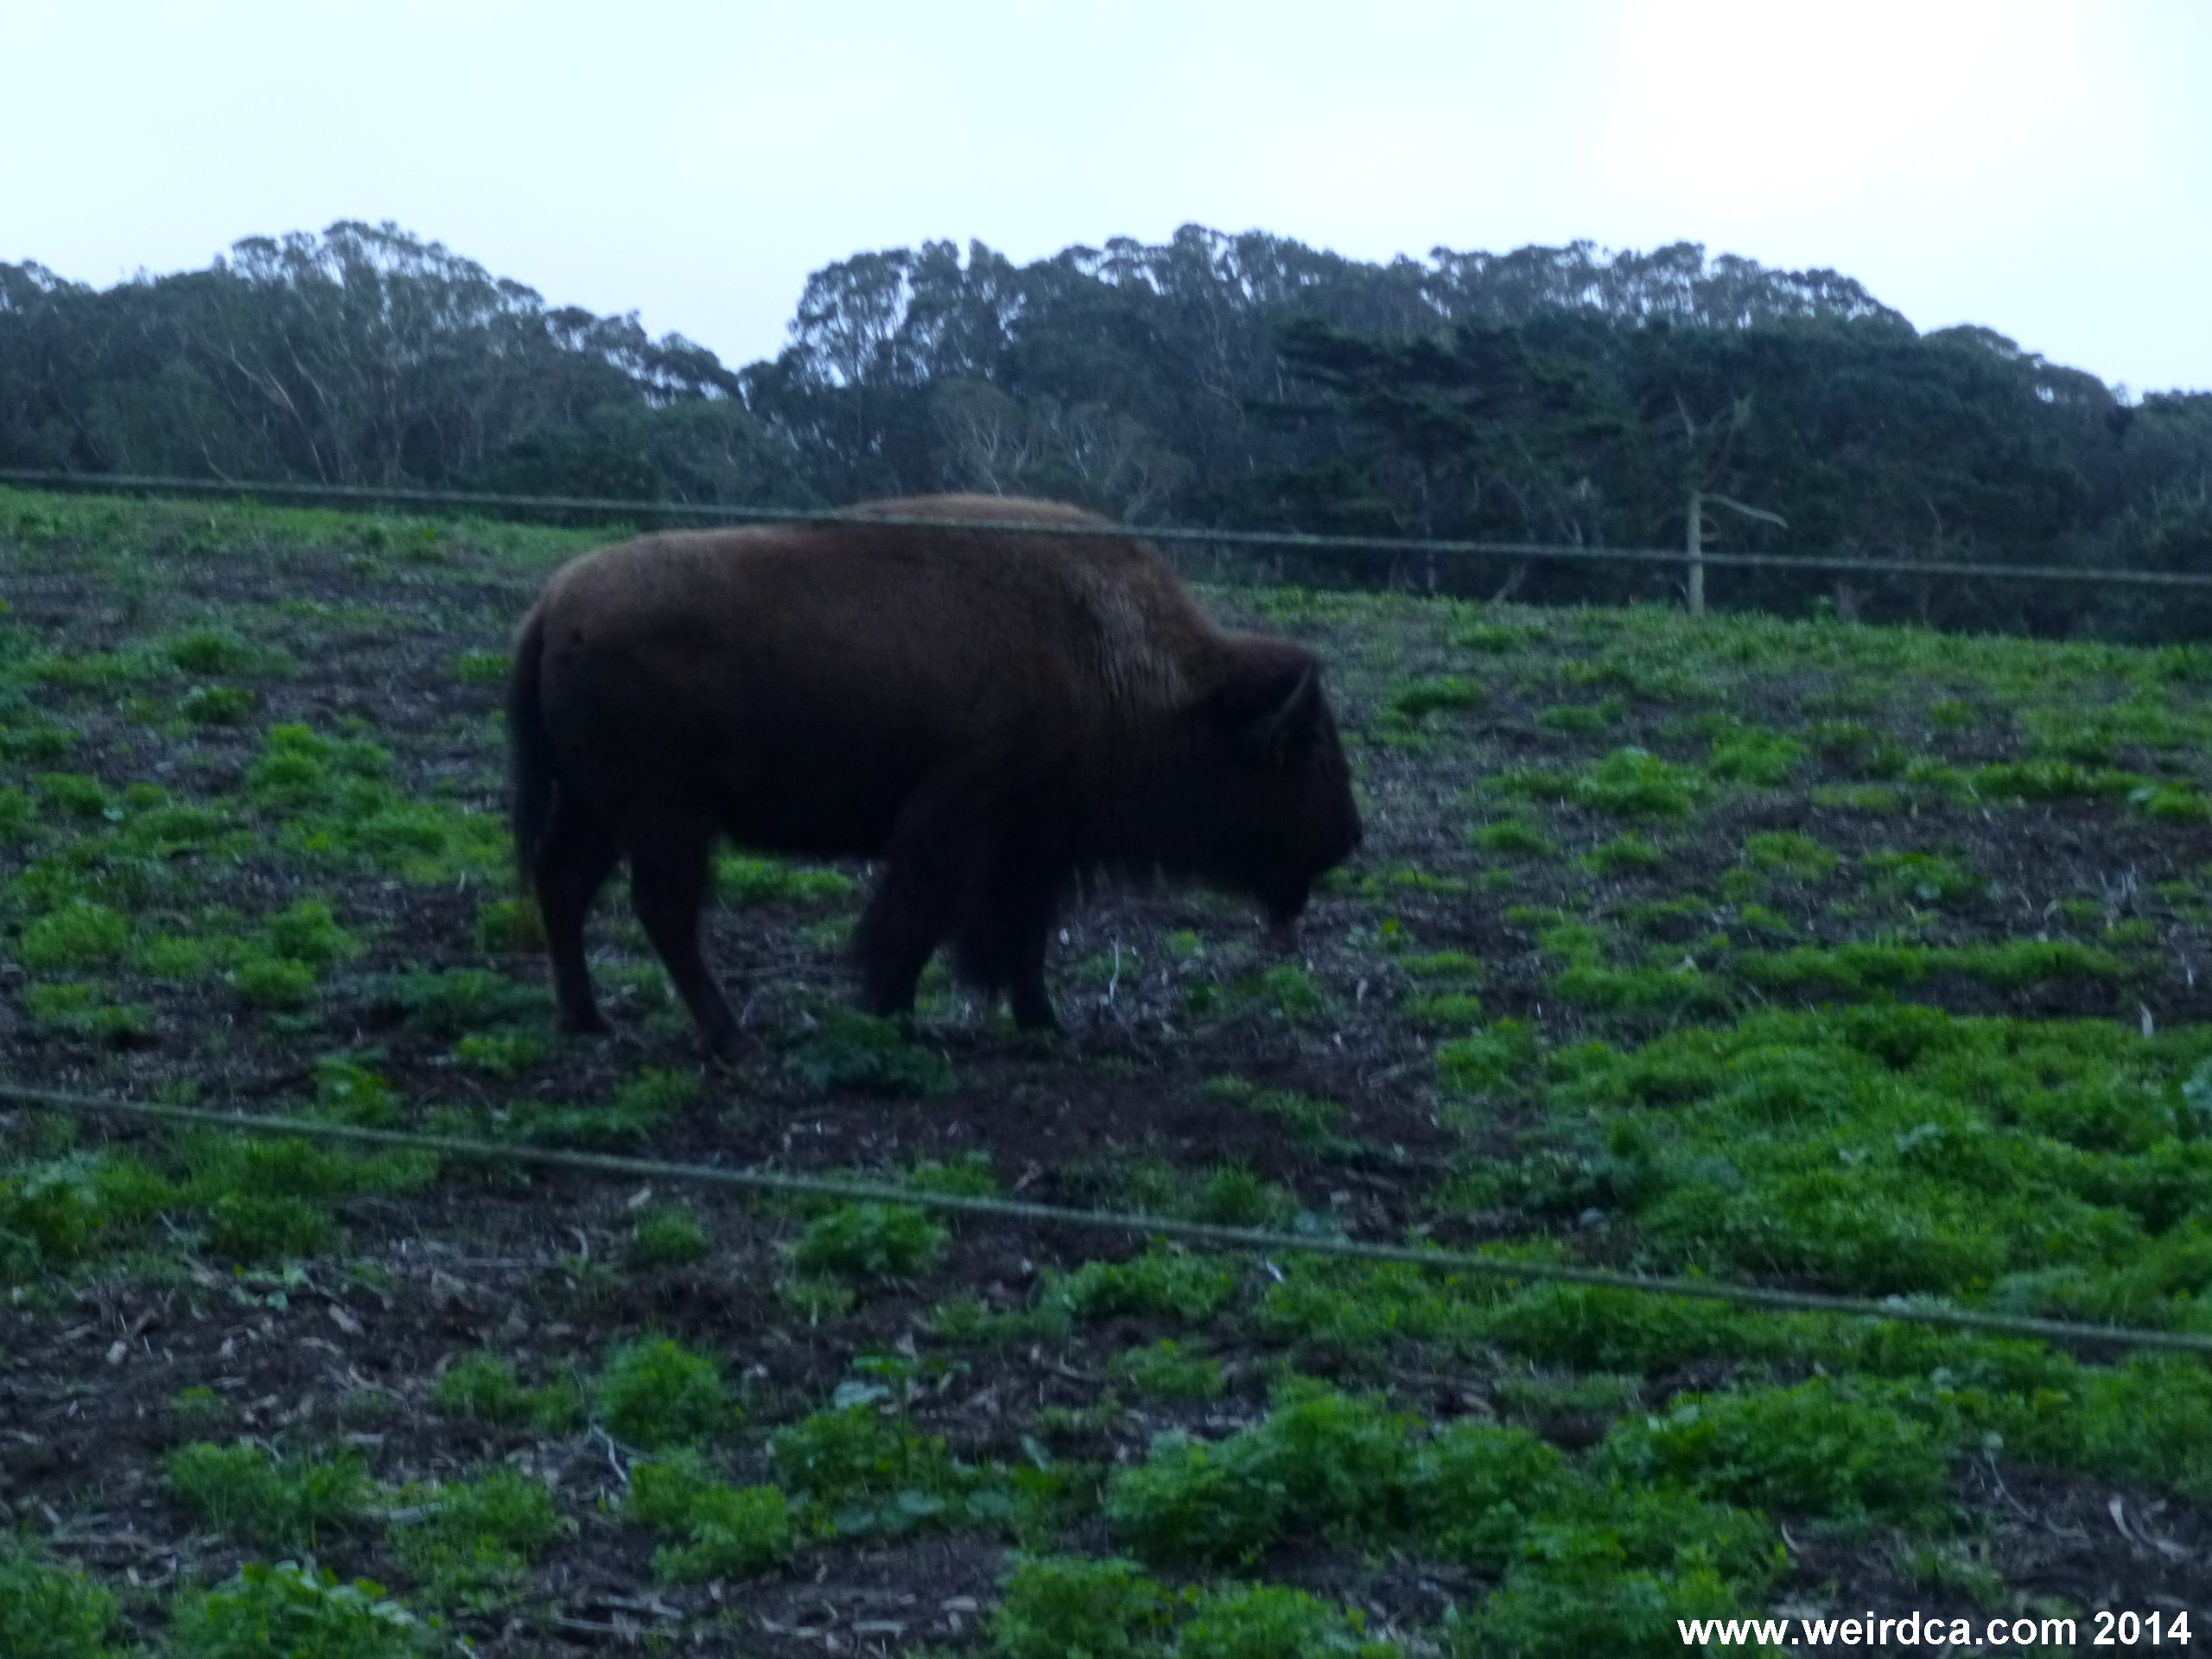 Bison roam Golden Gate Park in San Francisco